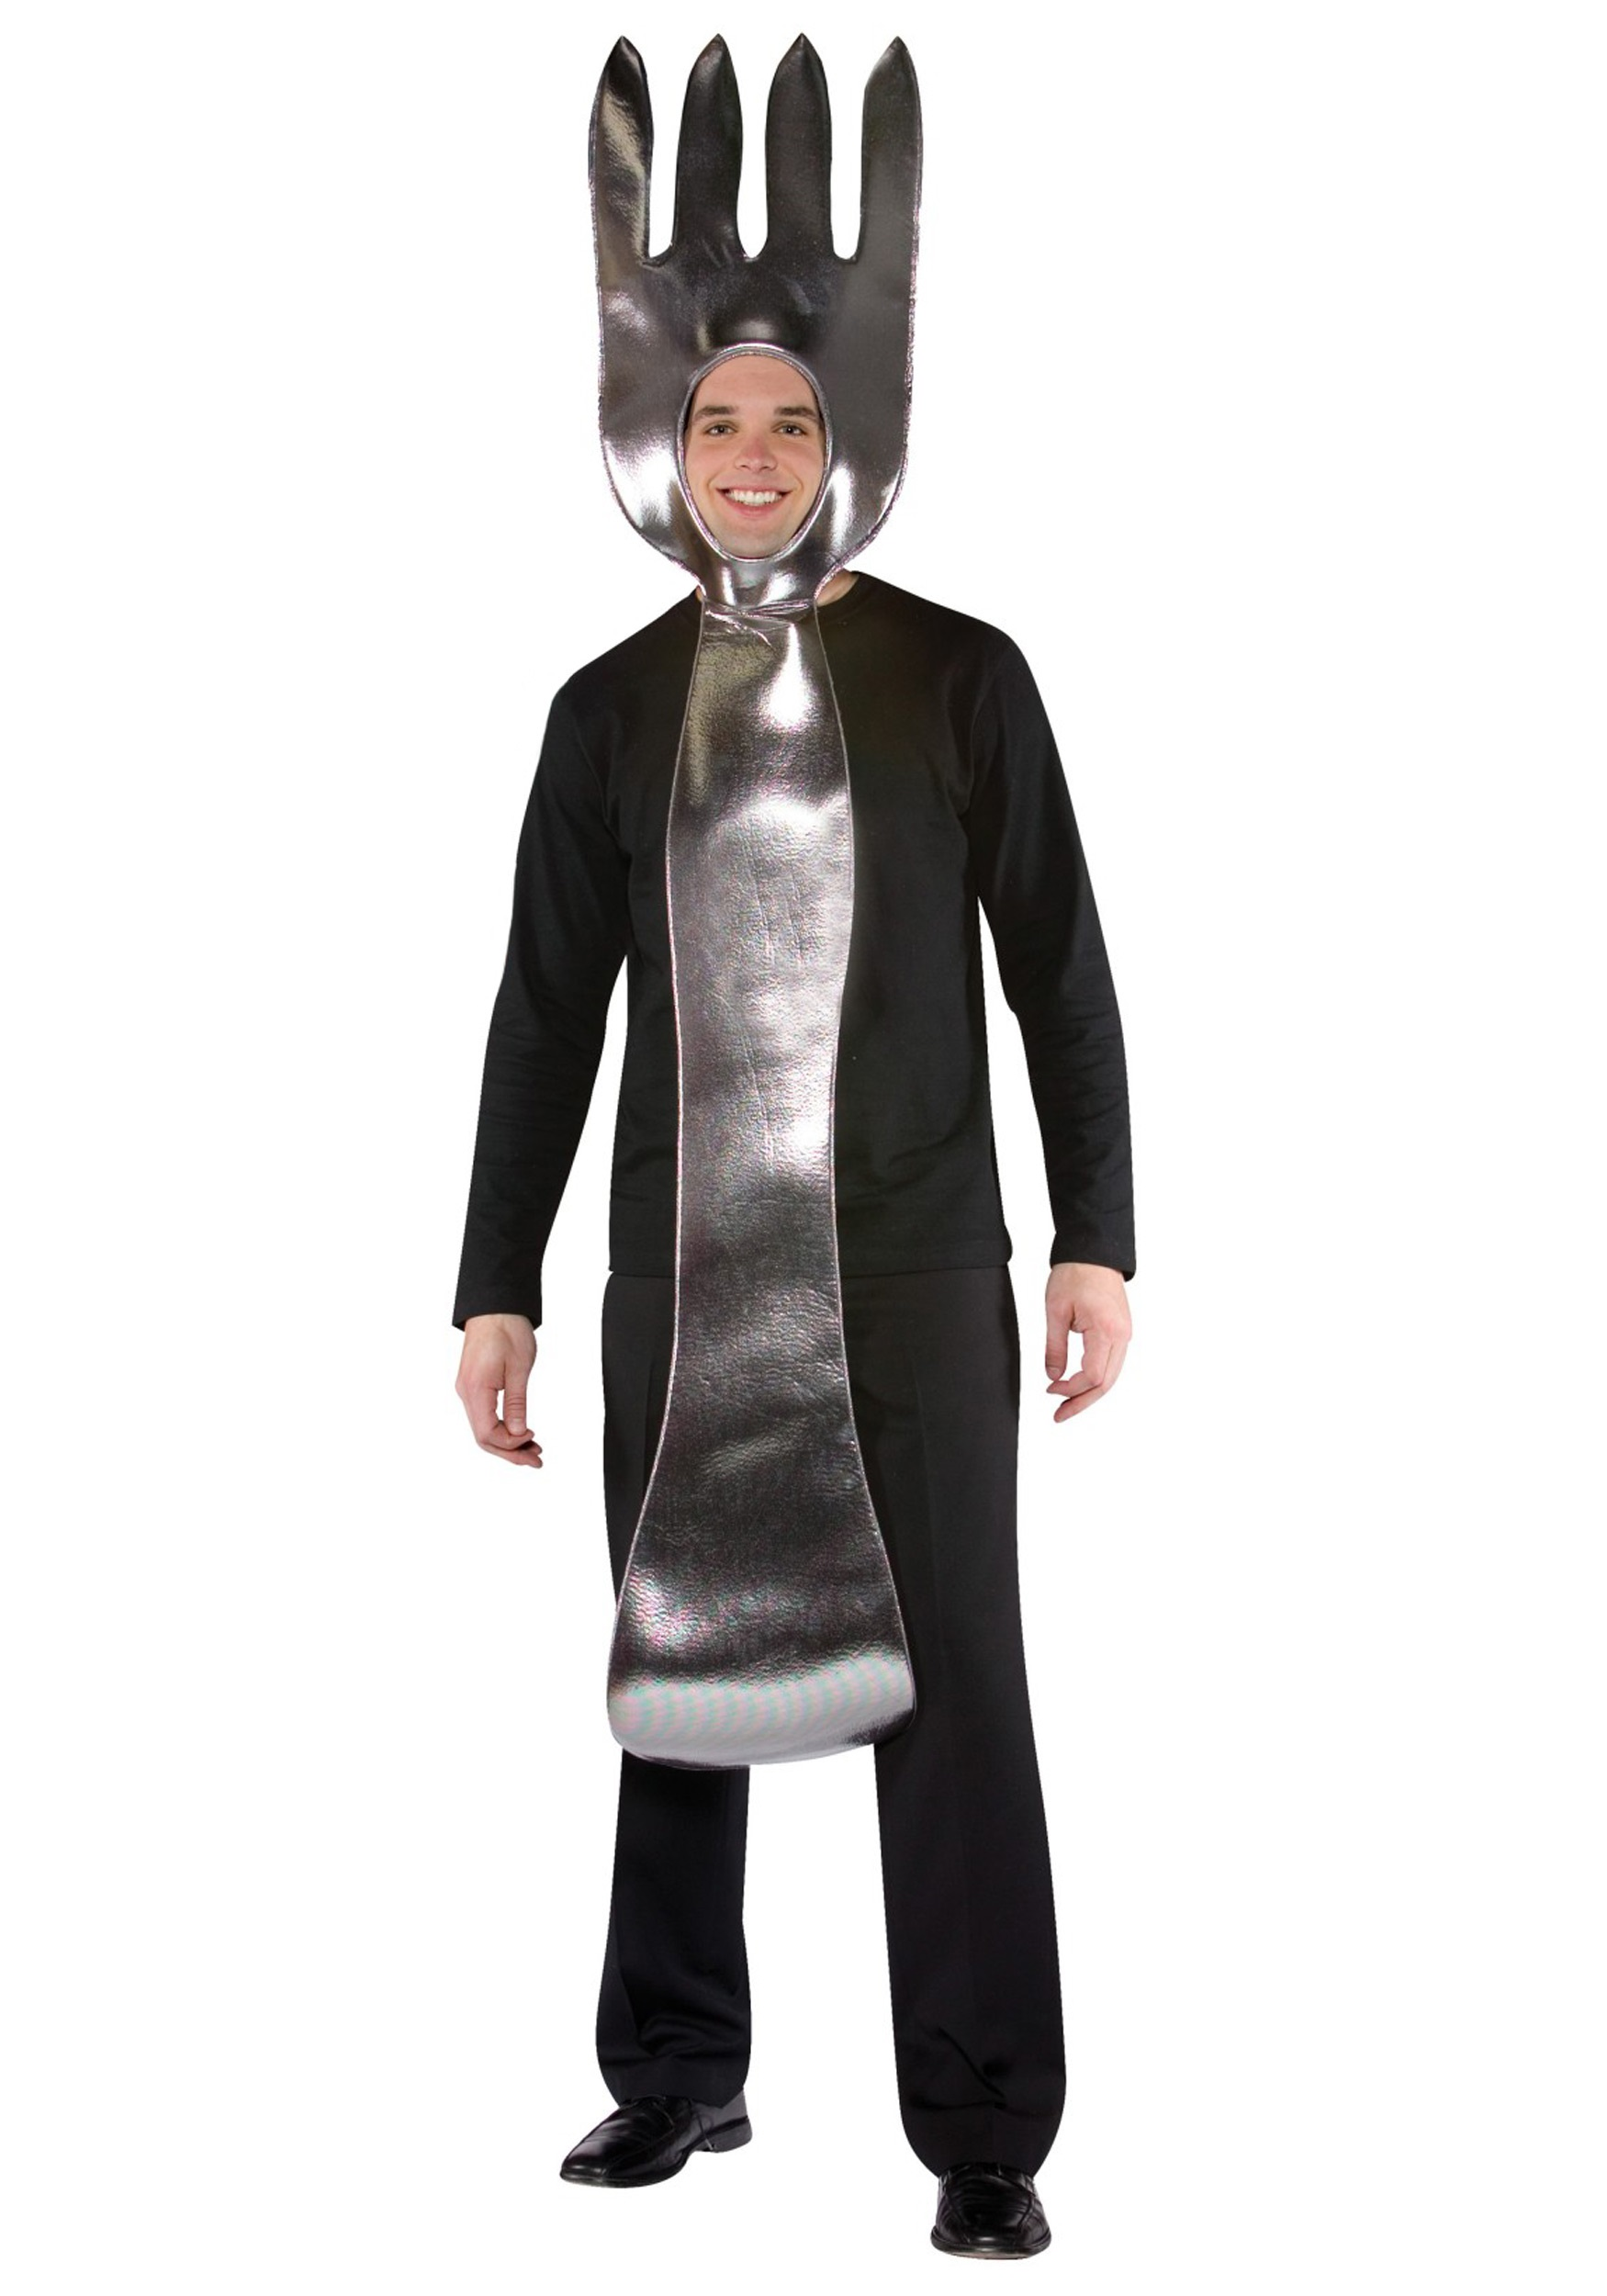 Spoon Silverware Adult Standard Size Costume